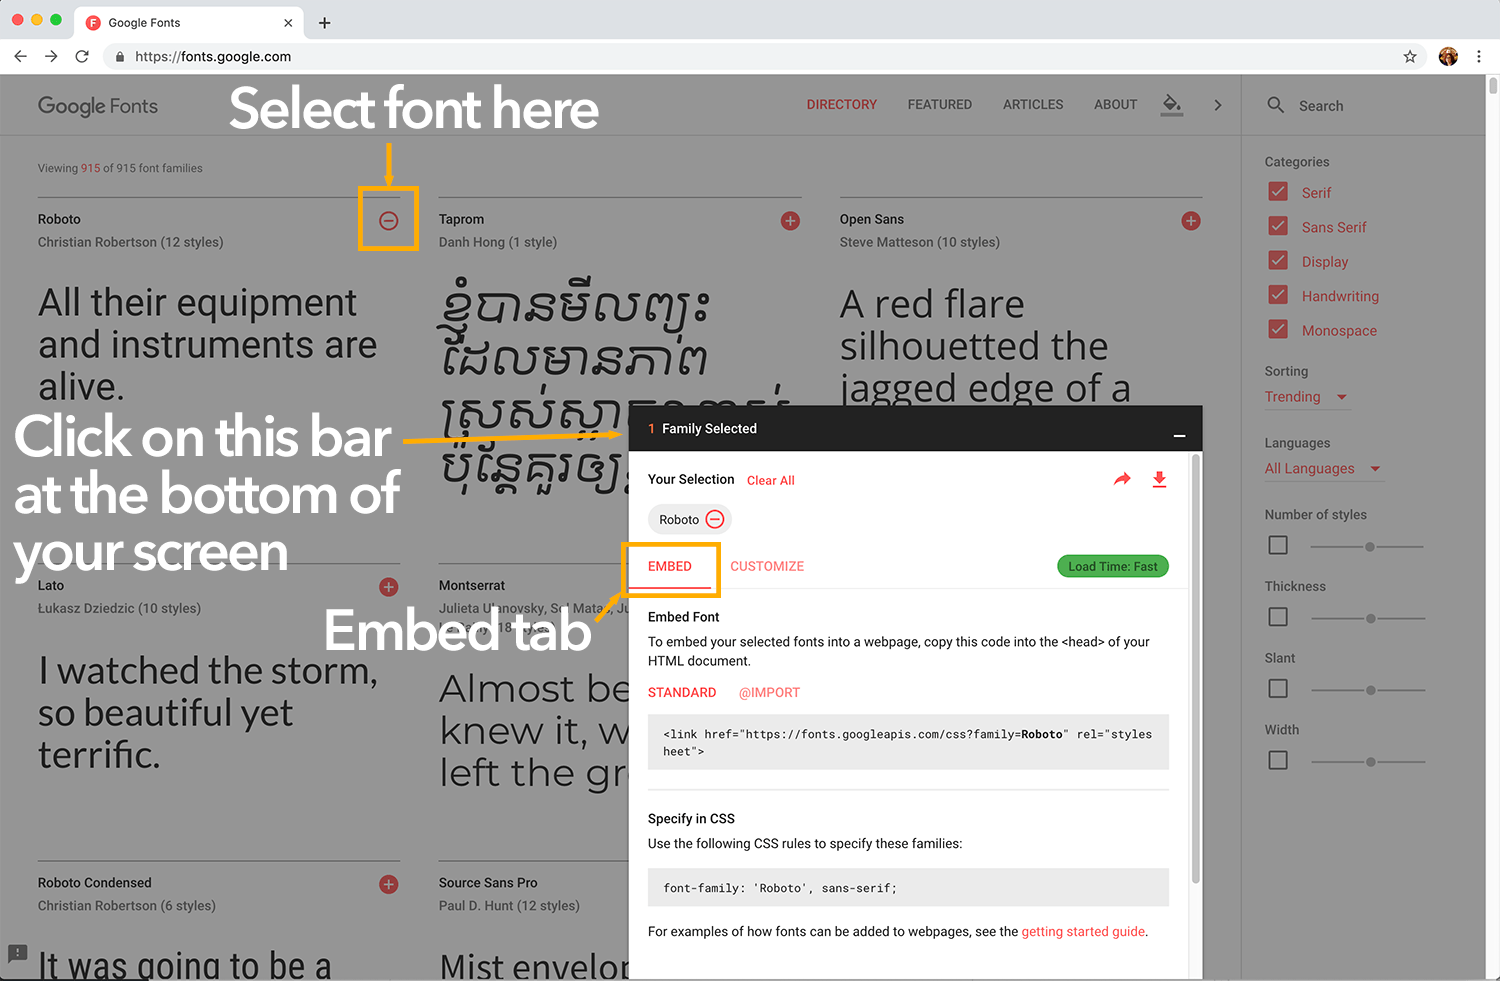 screen shot of Google fonts once a font is selected